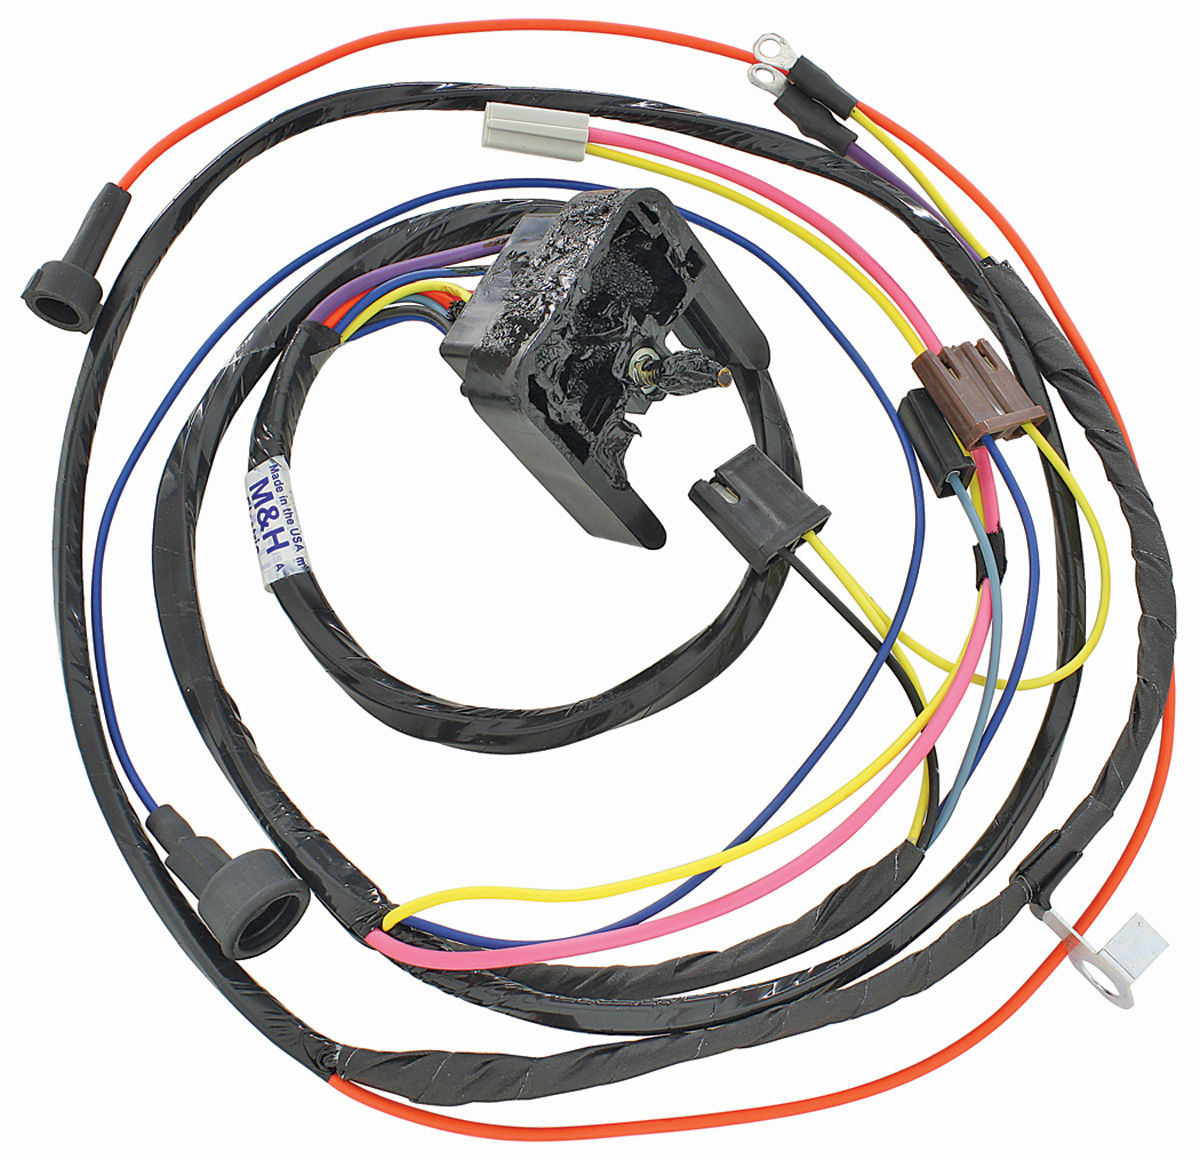 38947 lrg?v=102520130818 m&h 1968 69 chevelle engine harness 396 hei w warning lights 1965 chevelle wiring harness at cos-gaming.co